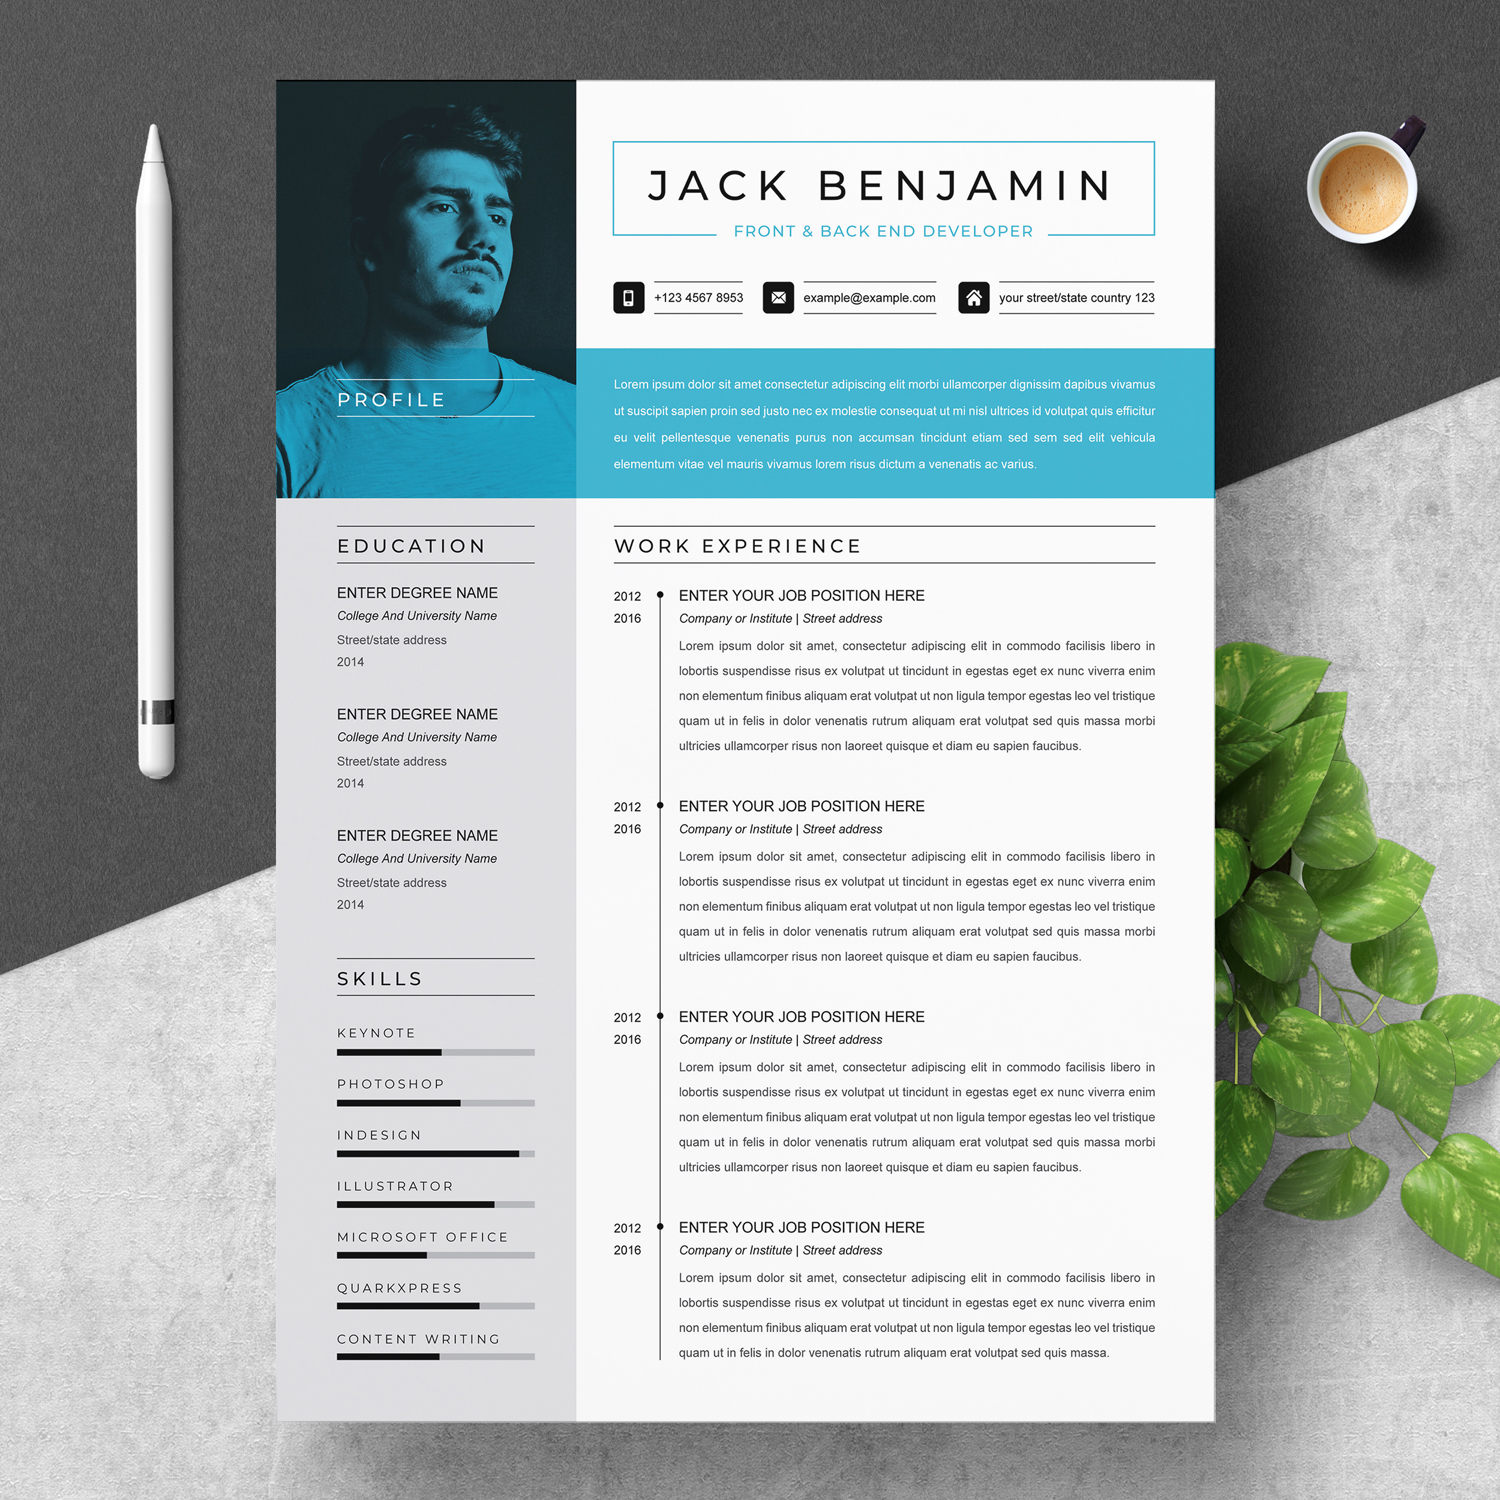 Front End Developer Resume 2021